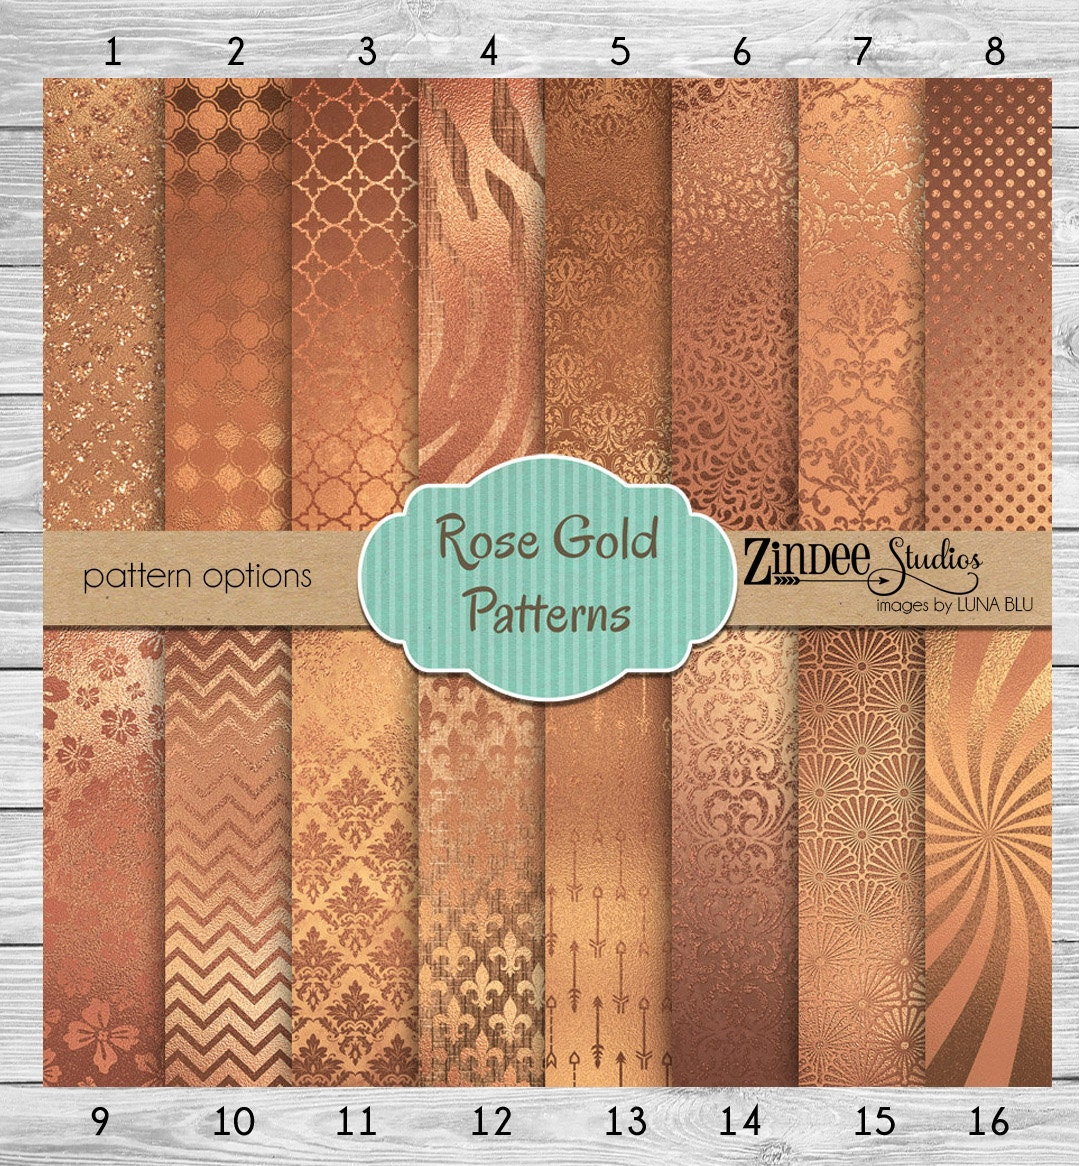 Printed vinyl rose gold patterns adhesive vinyl heat for Rose adesive